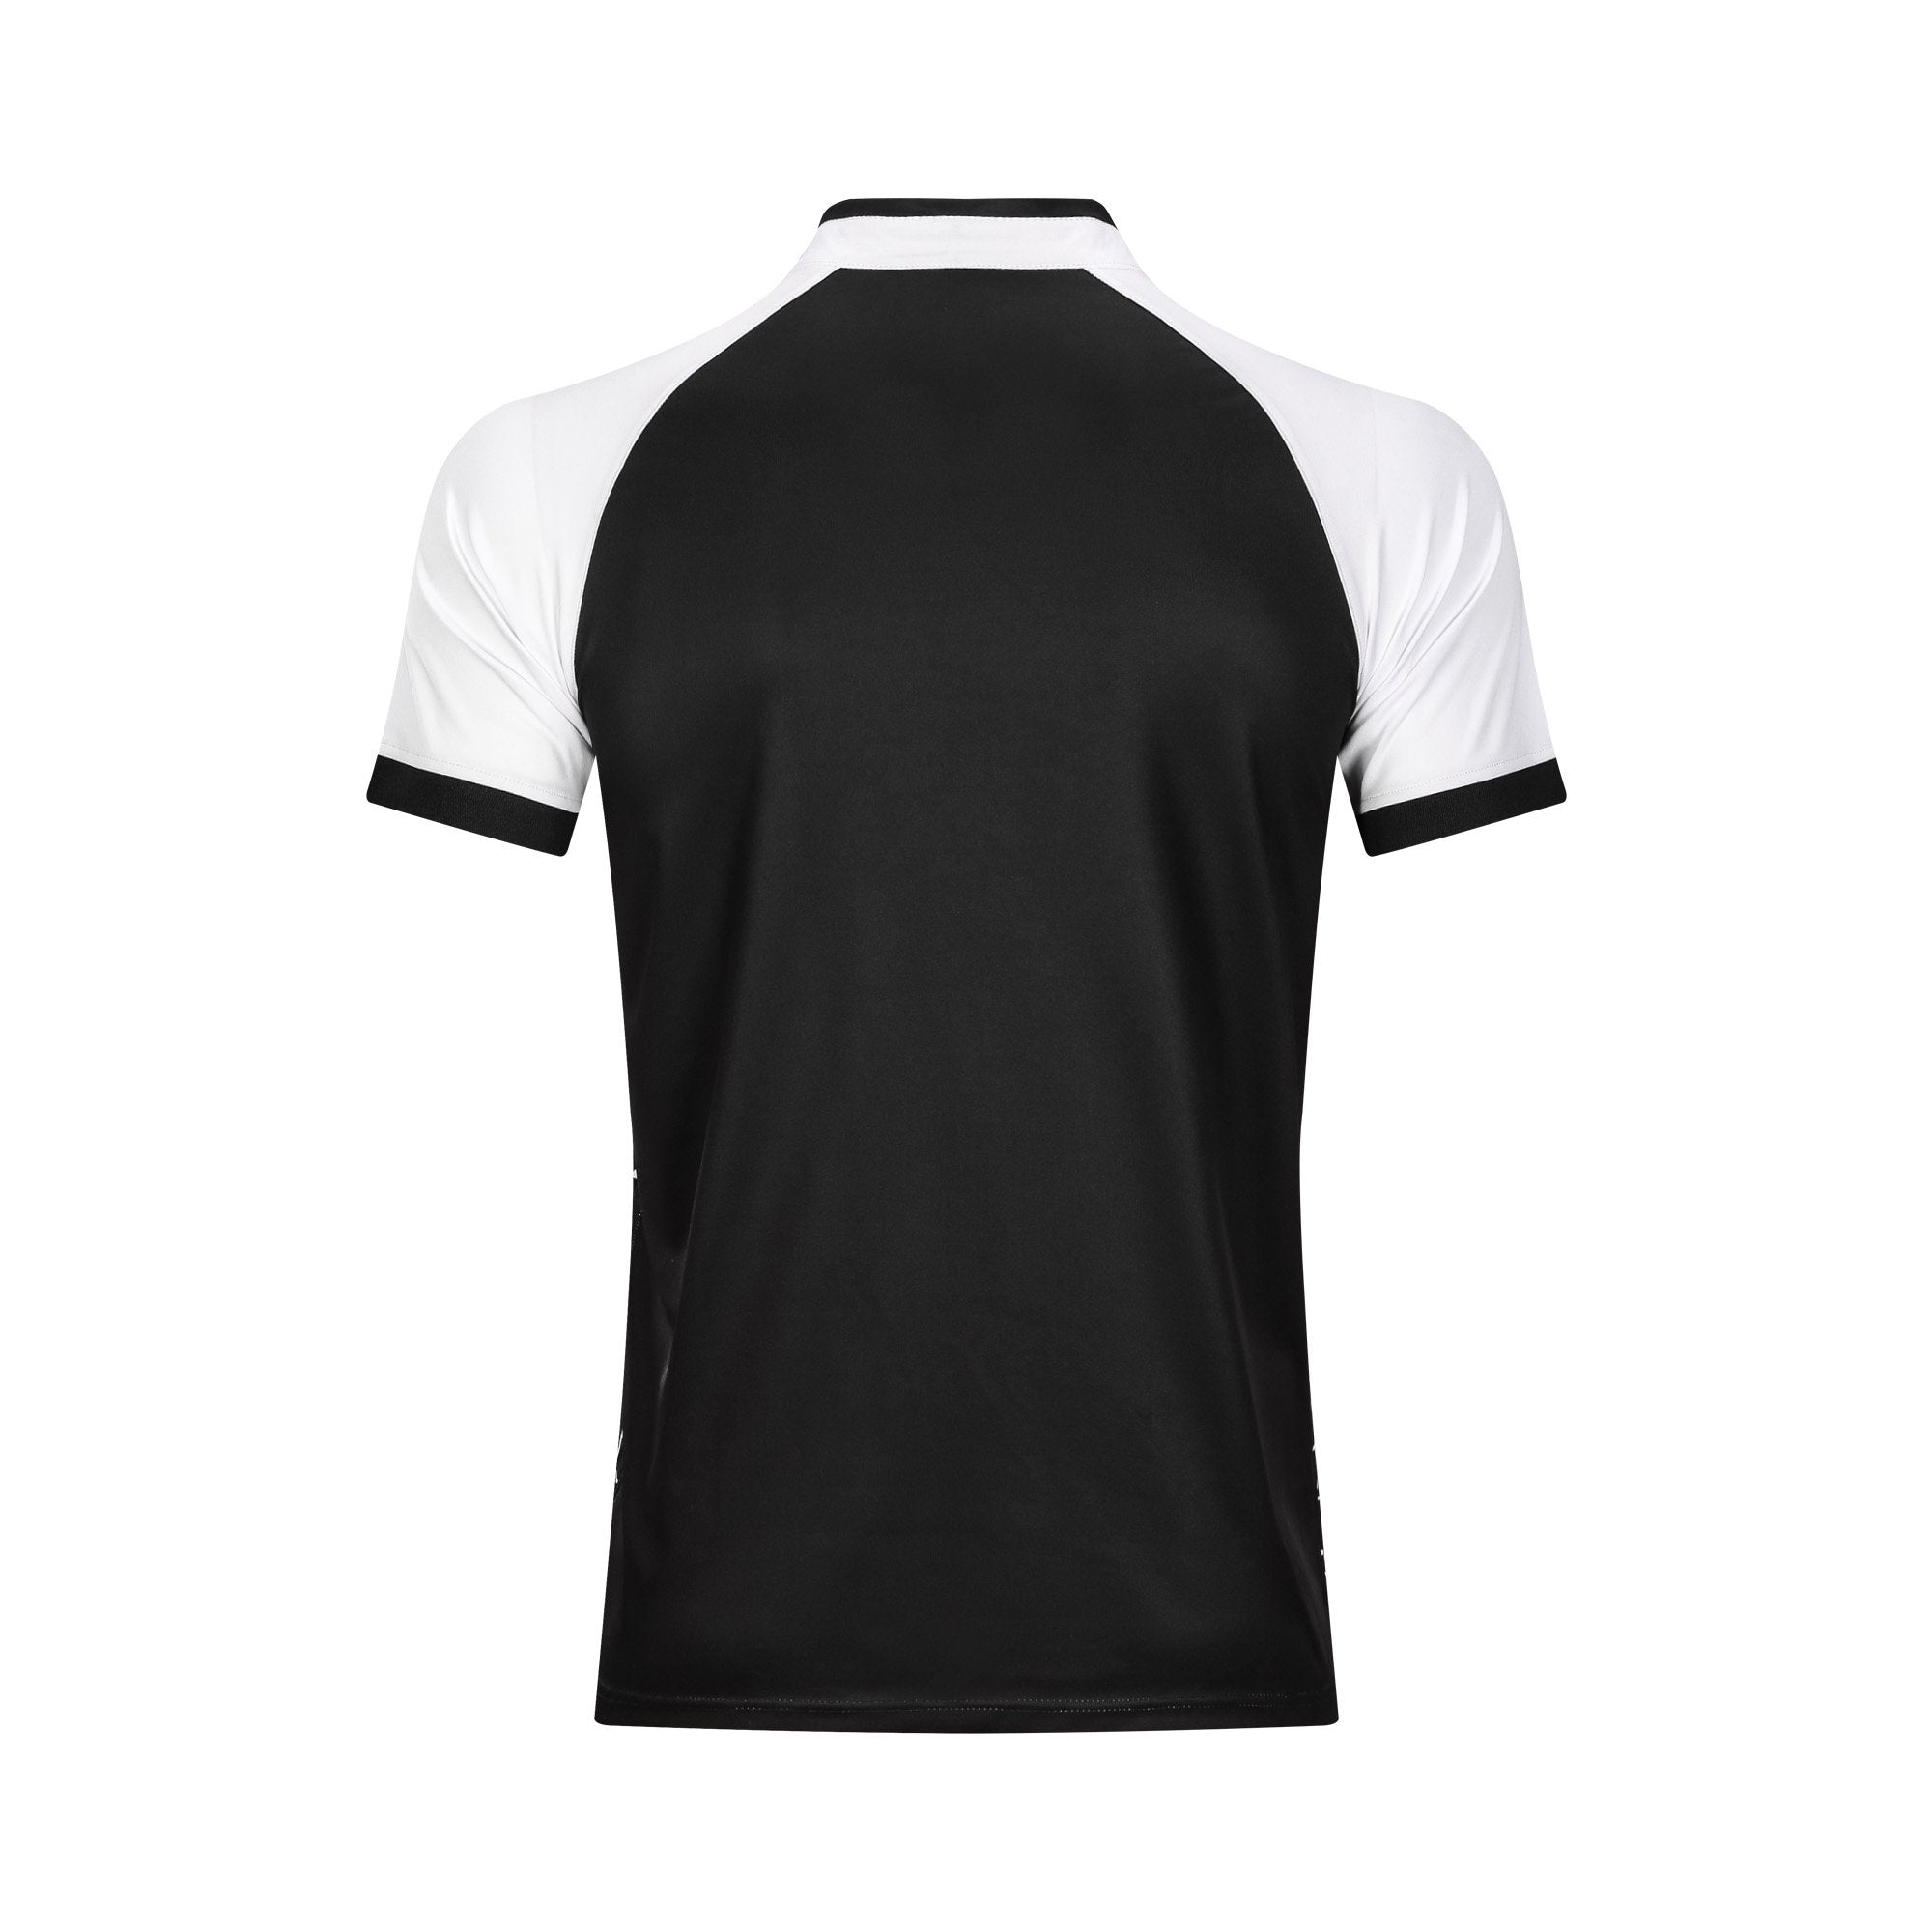 TPM SOGAM Supporter Jersey - Womens